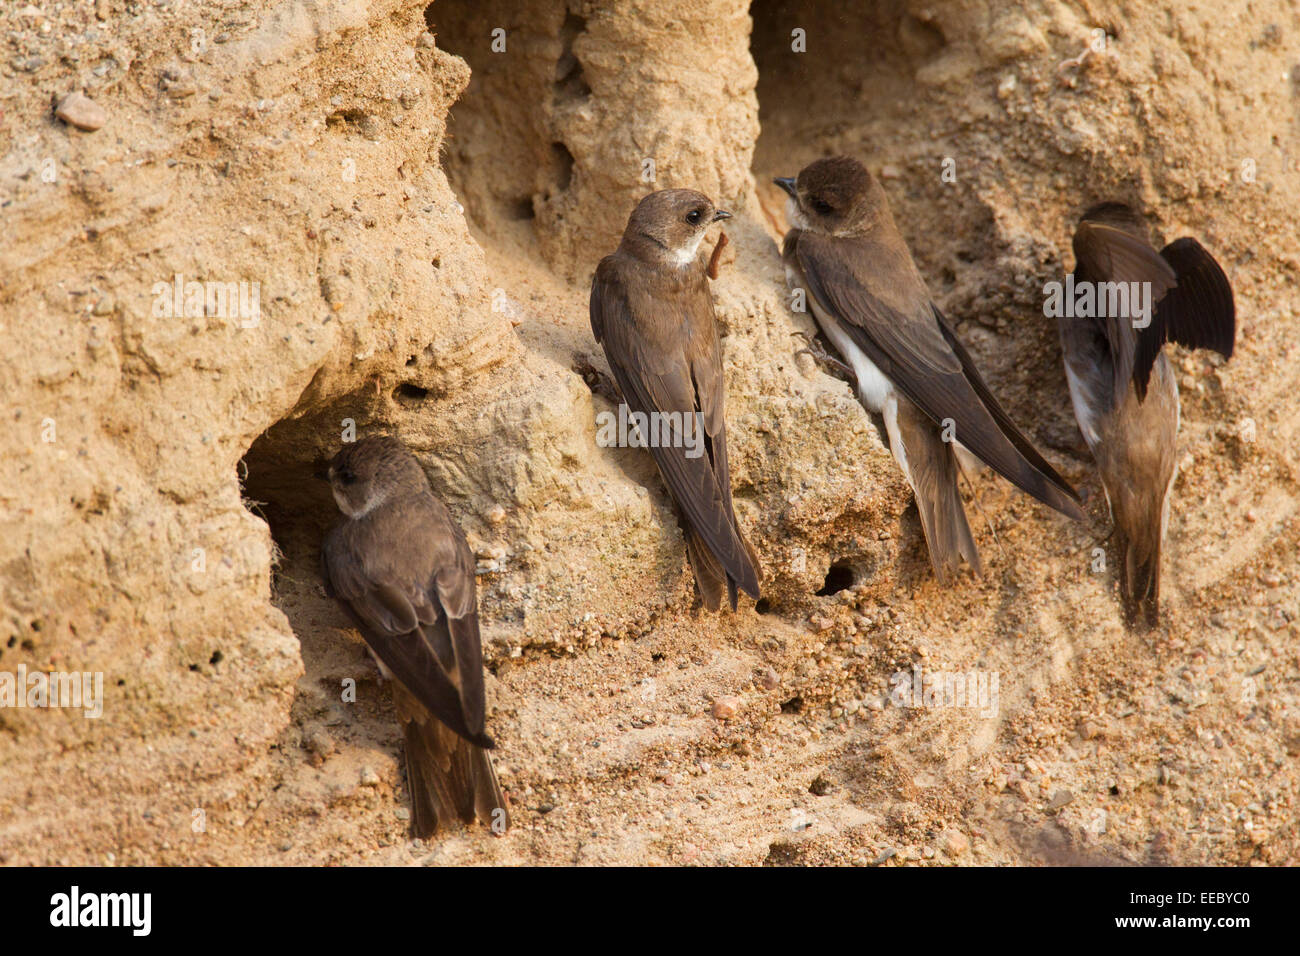 European sand martins / bank swallows (Riparia riparia) at nest hole in breeding colony on riverbank - Stock Image